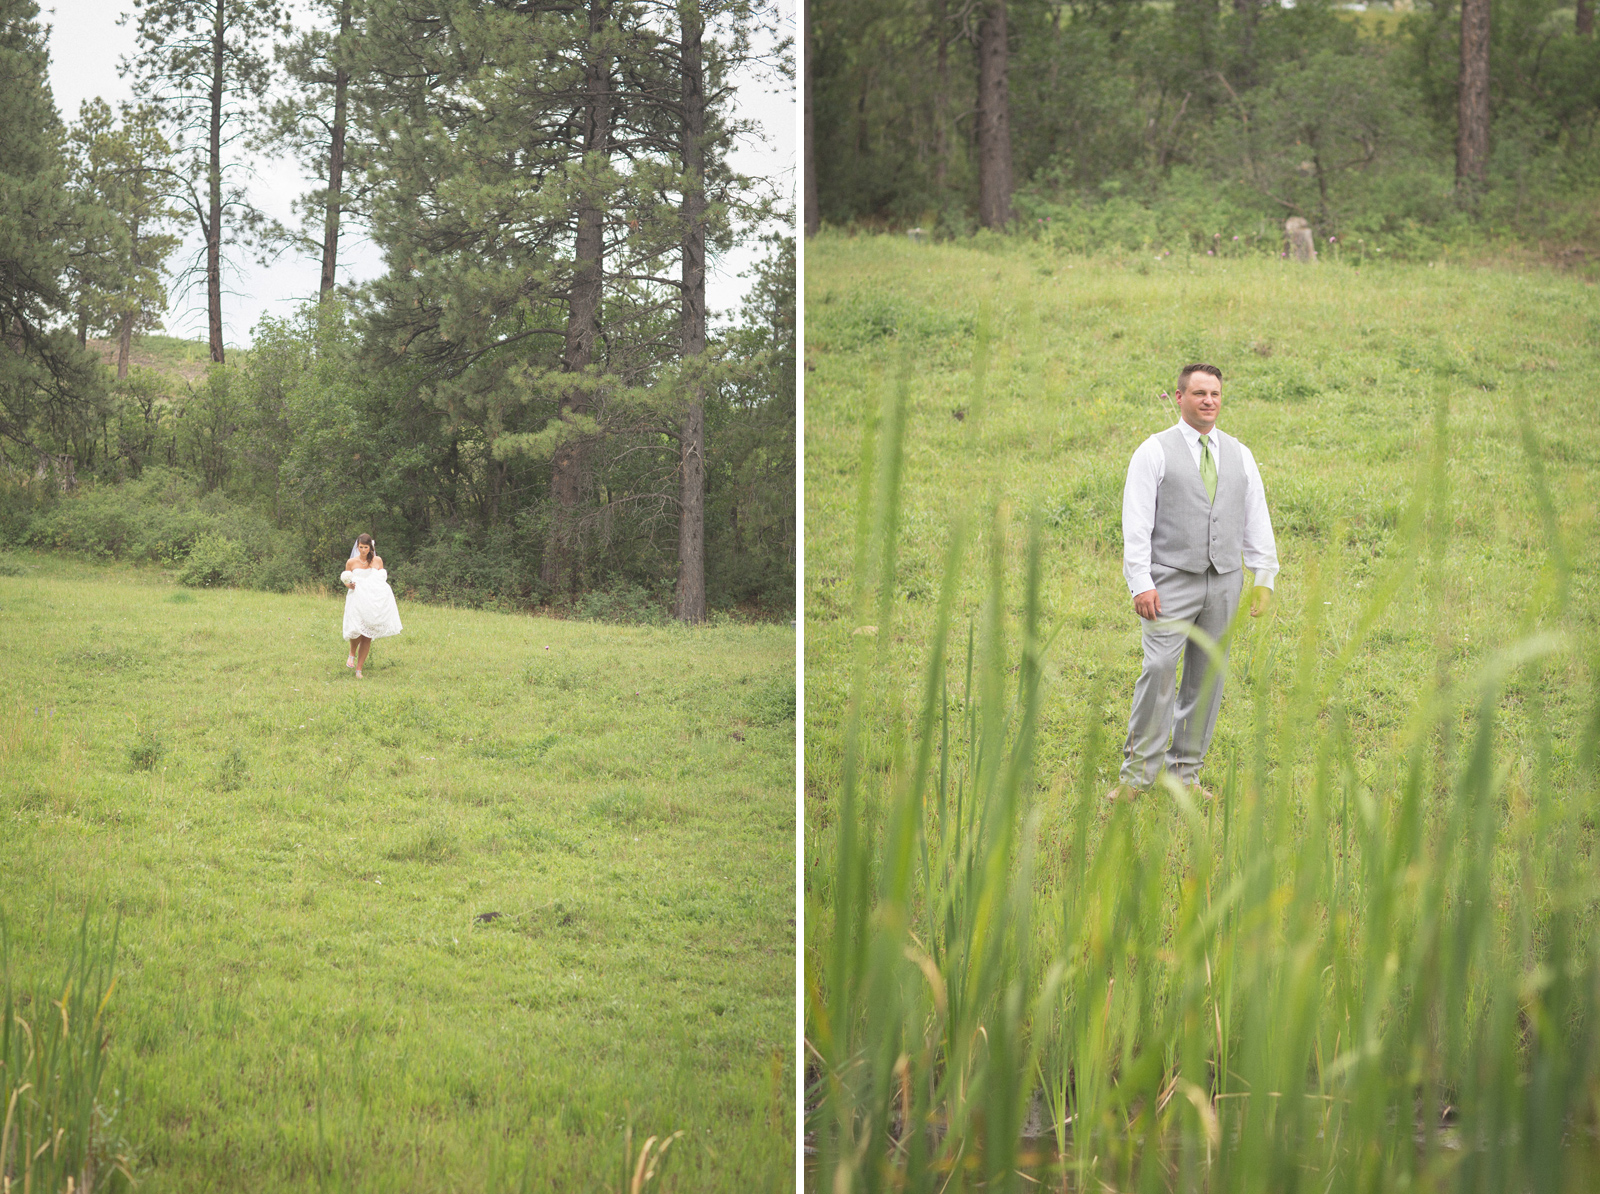 groom wedding cabin woods forest pictures photos dress photography portraits wedding party party